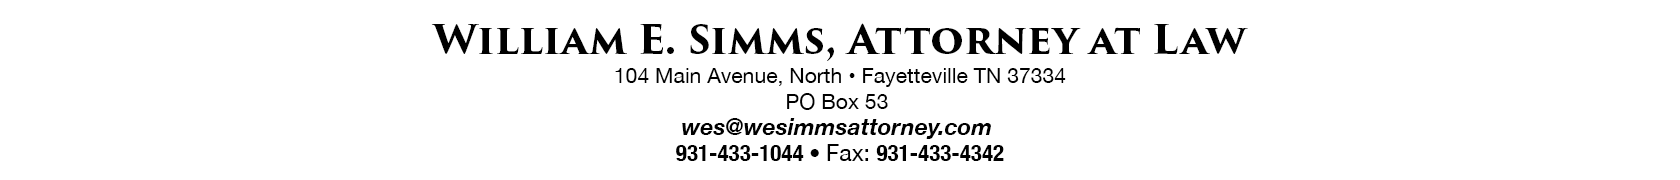 William E. Simms, Attorney